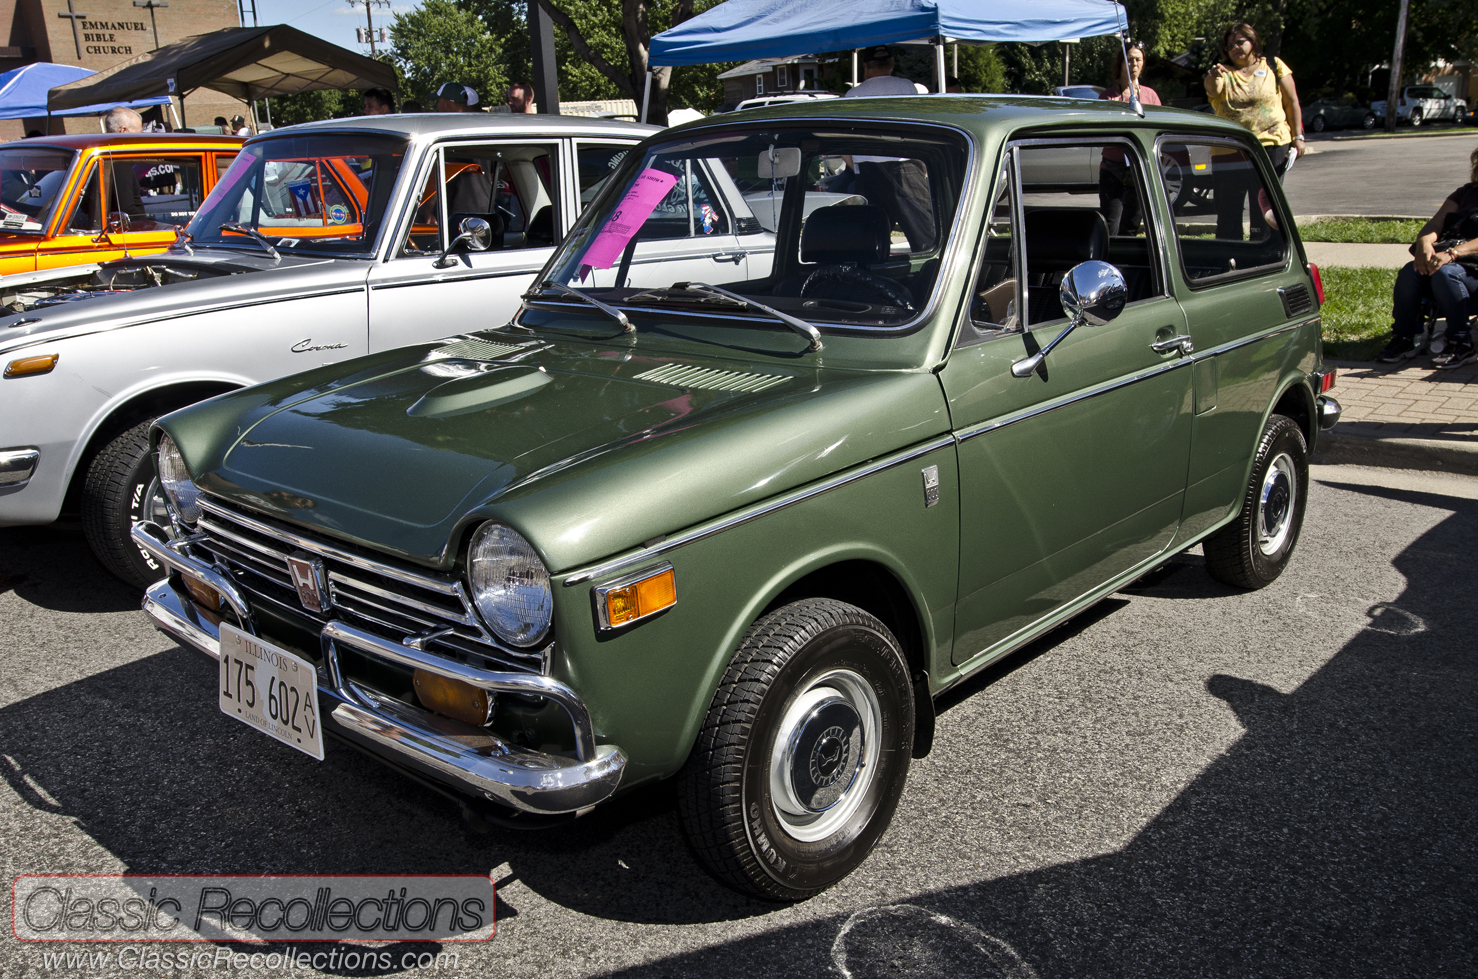 The Honda 600 Was First Car From Manufacturer To Be Sold In US